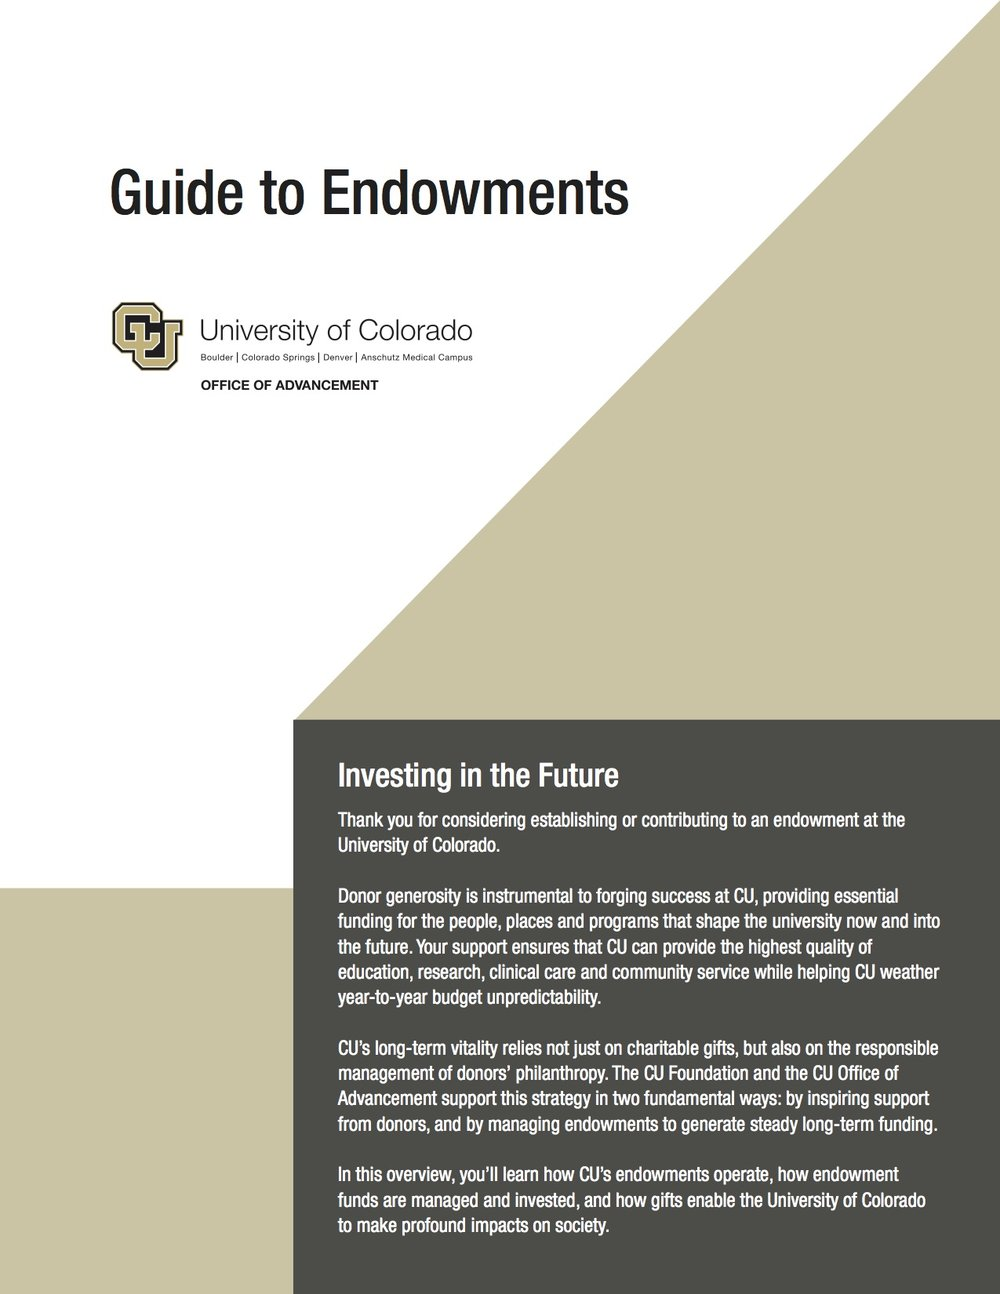 Guide to Endowments